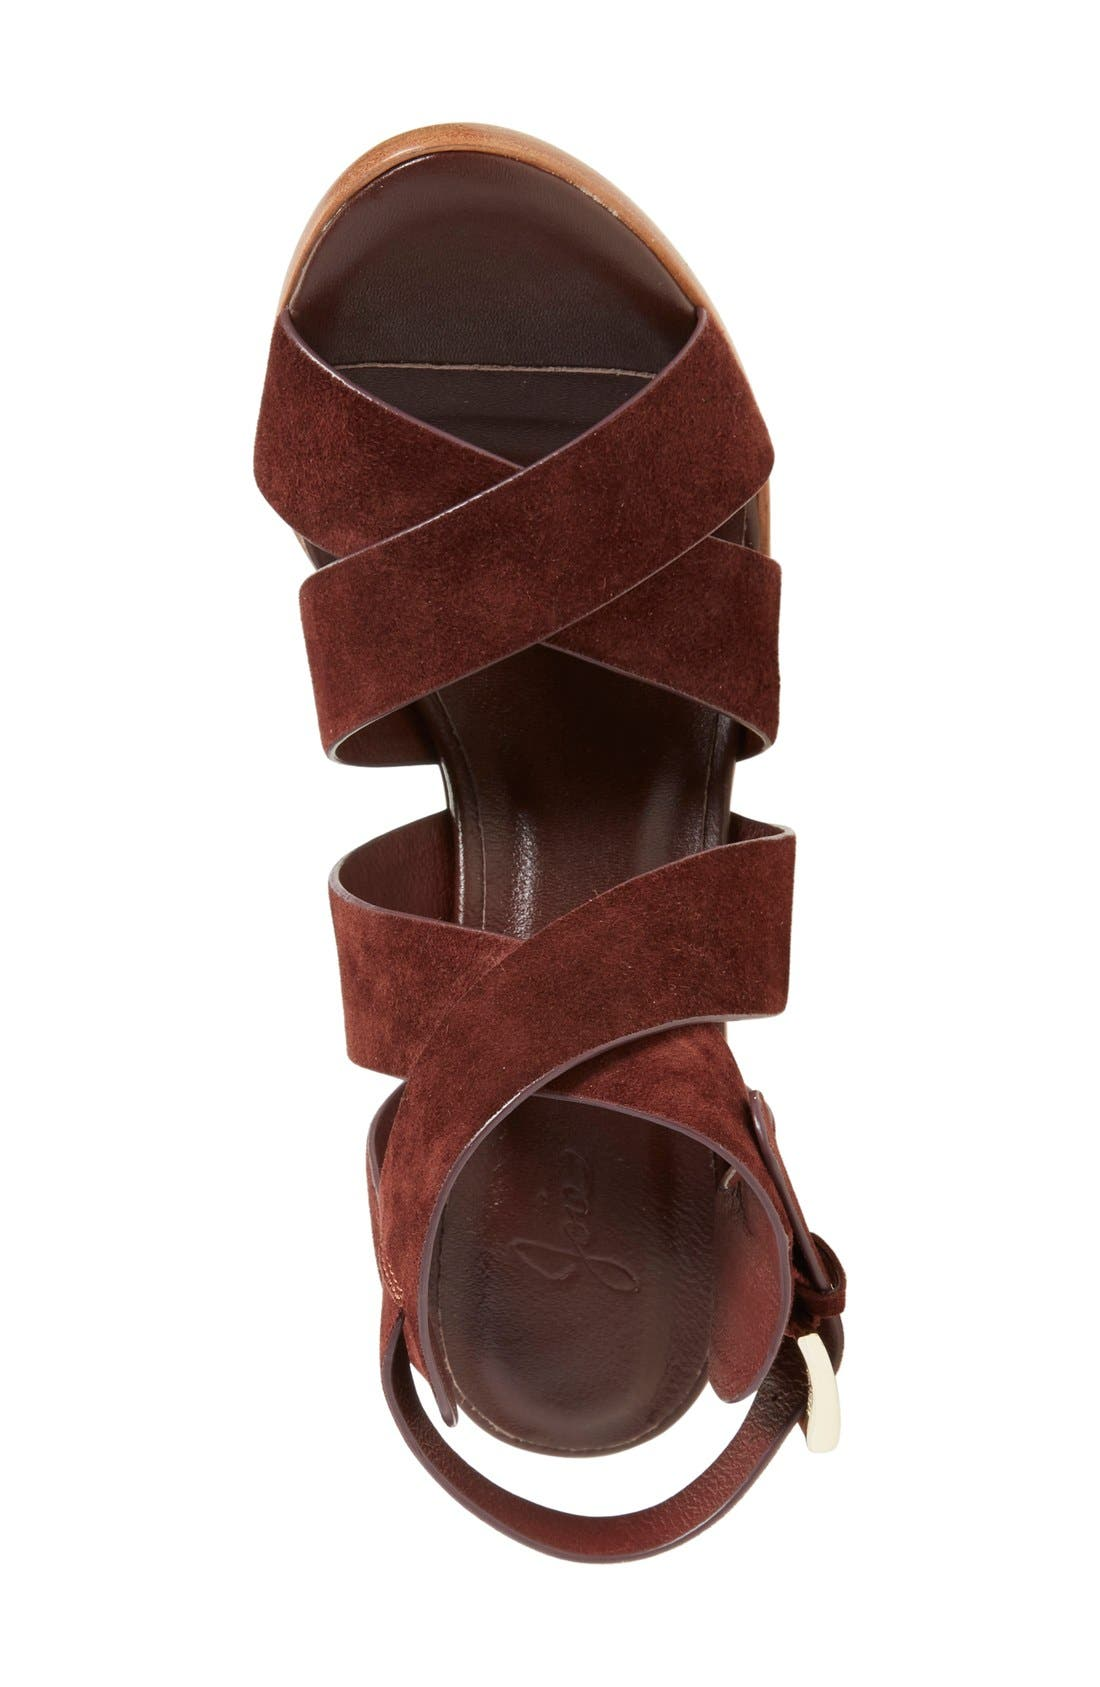 'Avery' Crisscross Block Heel Sandal,                             Alternate thumbnail 3, color,                             Oxblood Suede